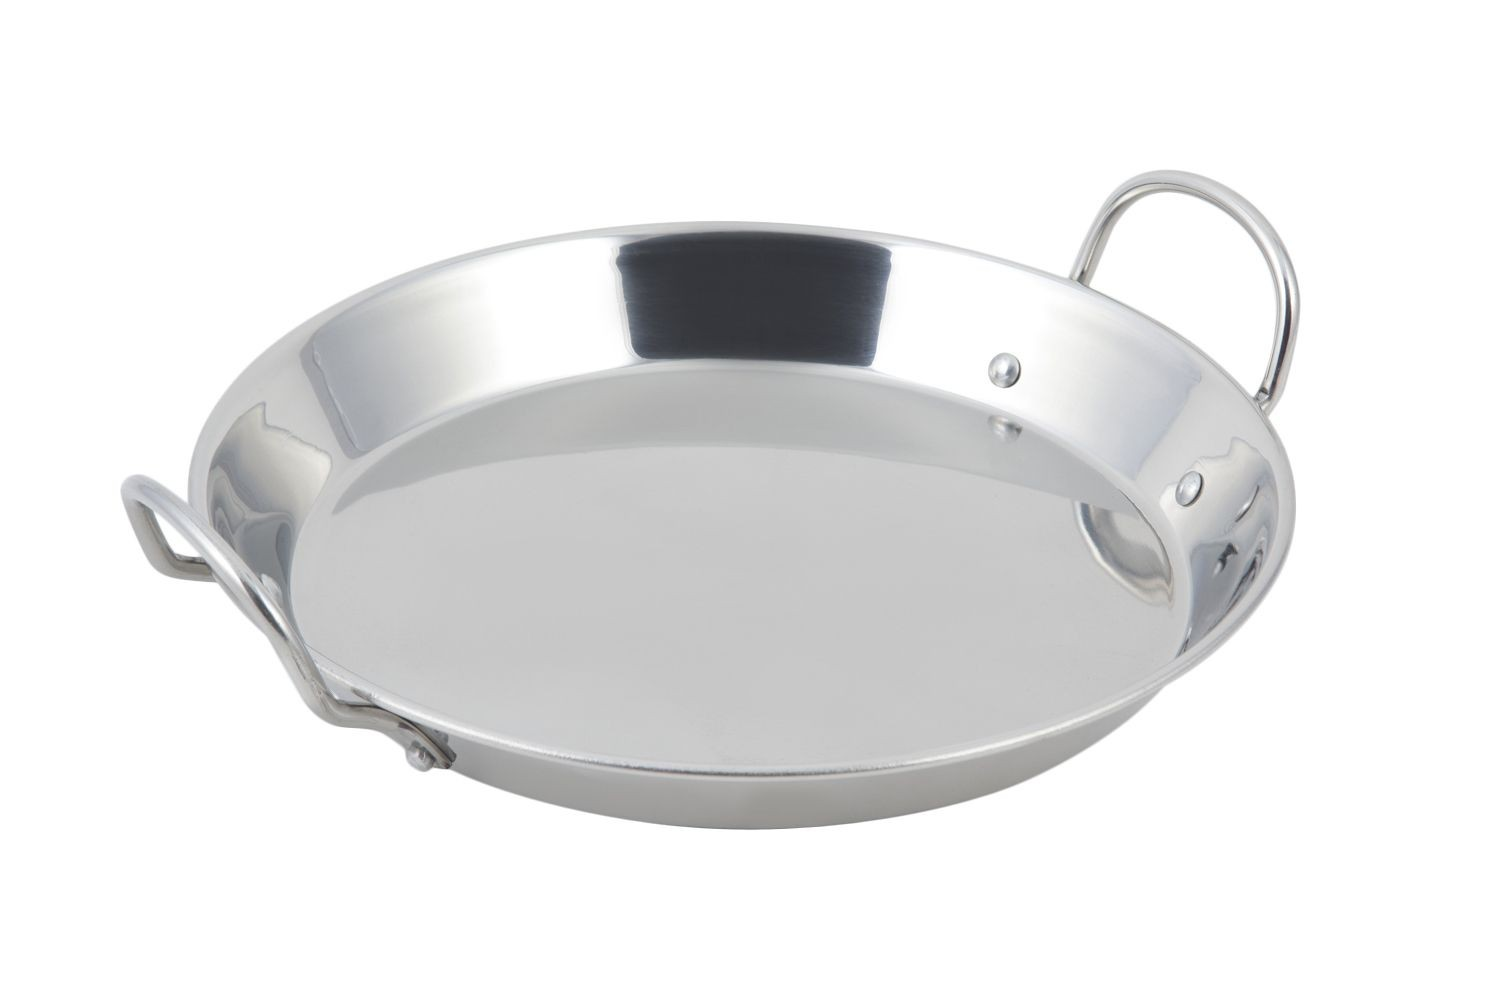 "Bon chef 61250 Stainless Steel Paella Tray with Induction Bottom, 13 1/5"" Dia."